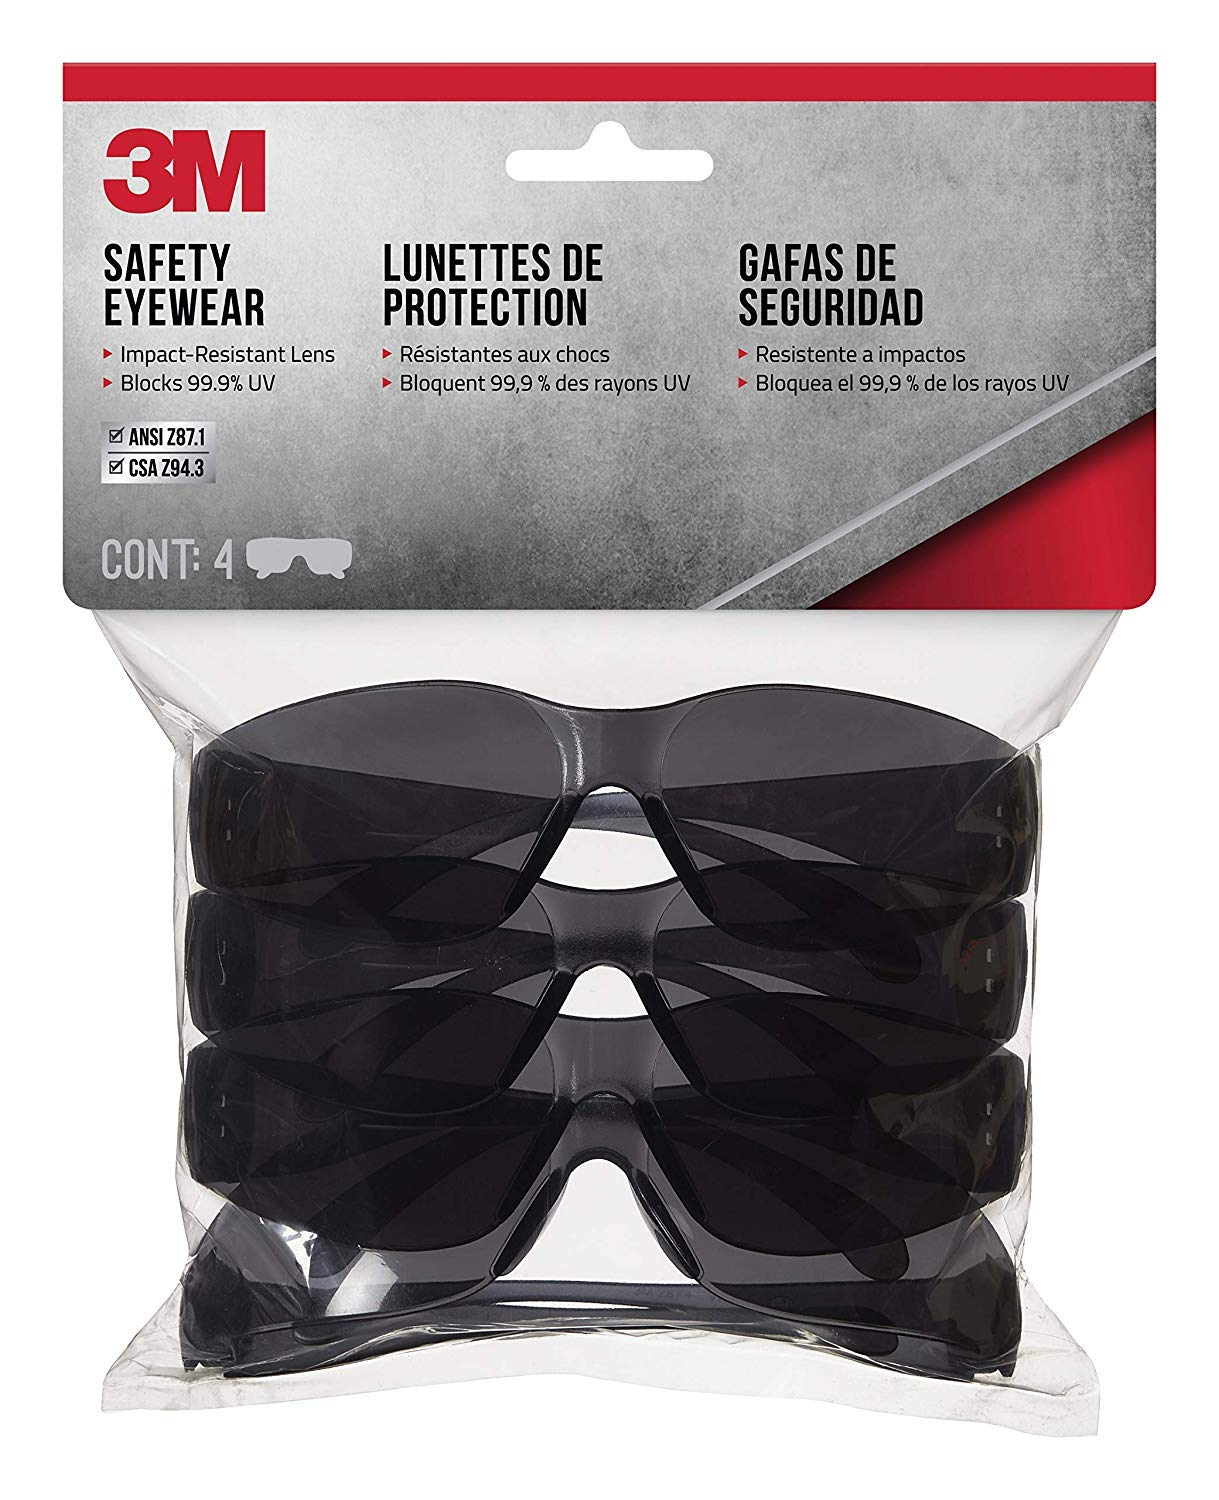 3M 90835 Outdoor Safety Eyewear, Black Frame, Gray Scratch Resistant Lenses (4 Pack) (3) by 3M Safety